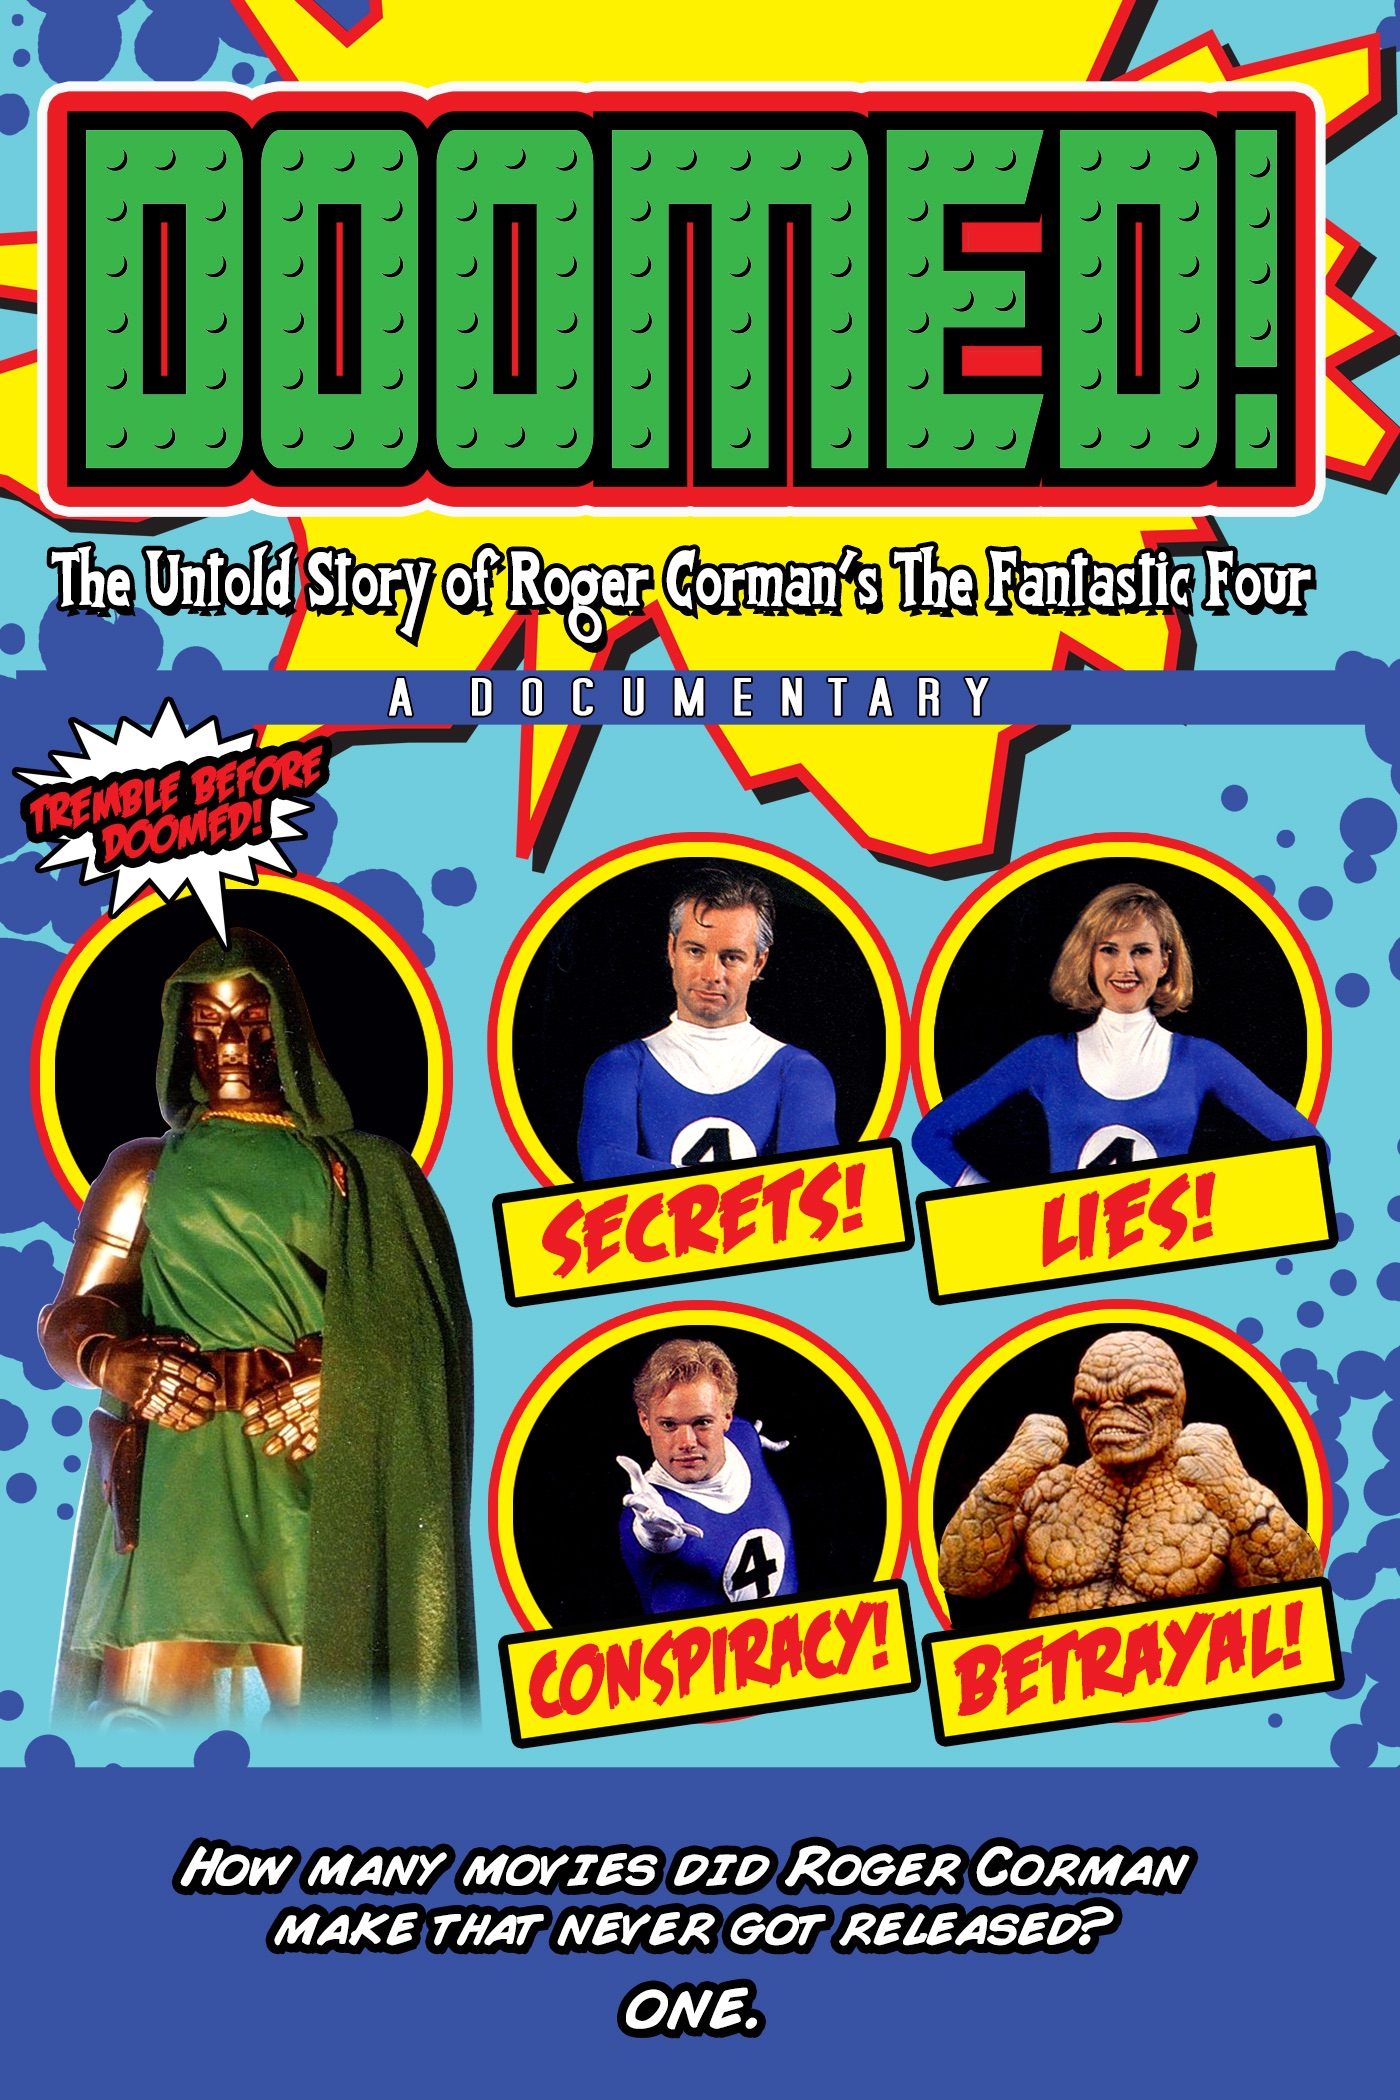 DOOMED! explores the circumstances surrounding the legendary cult classic Roger Corman film, THE FANTASTIC FOUR. In 1994, Mr. Corman was asked to produce ...